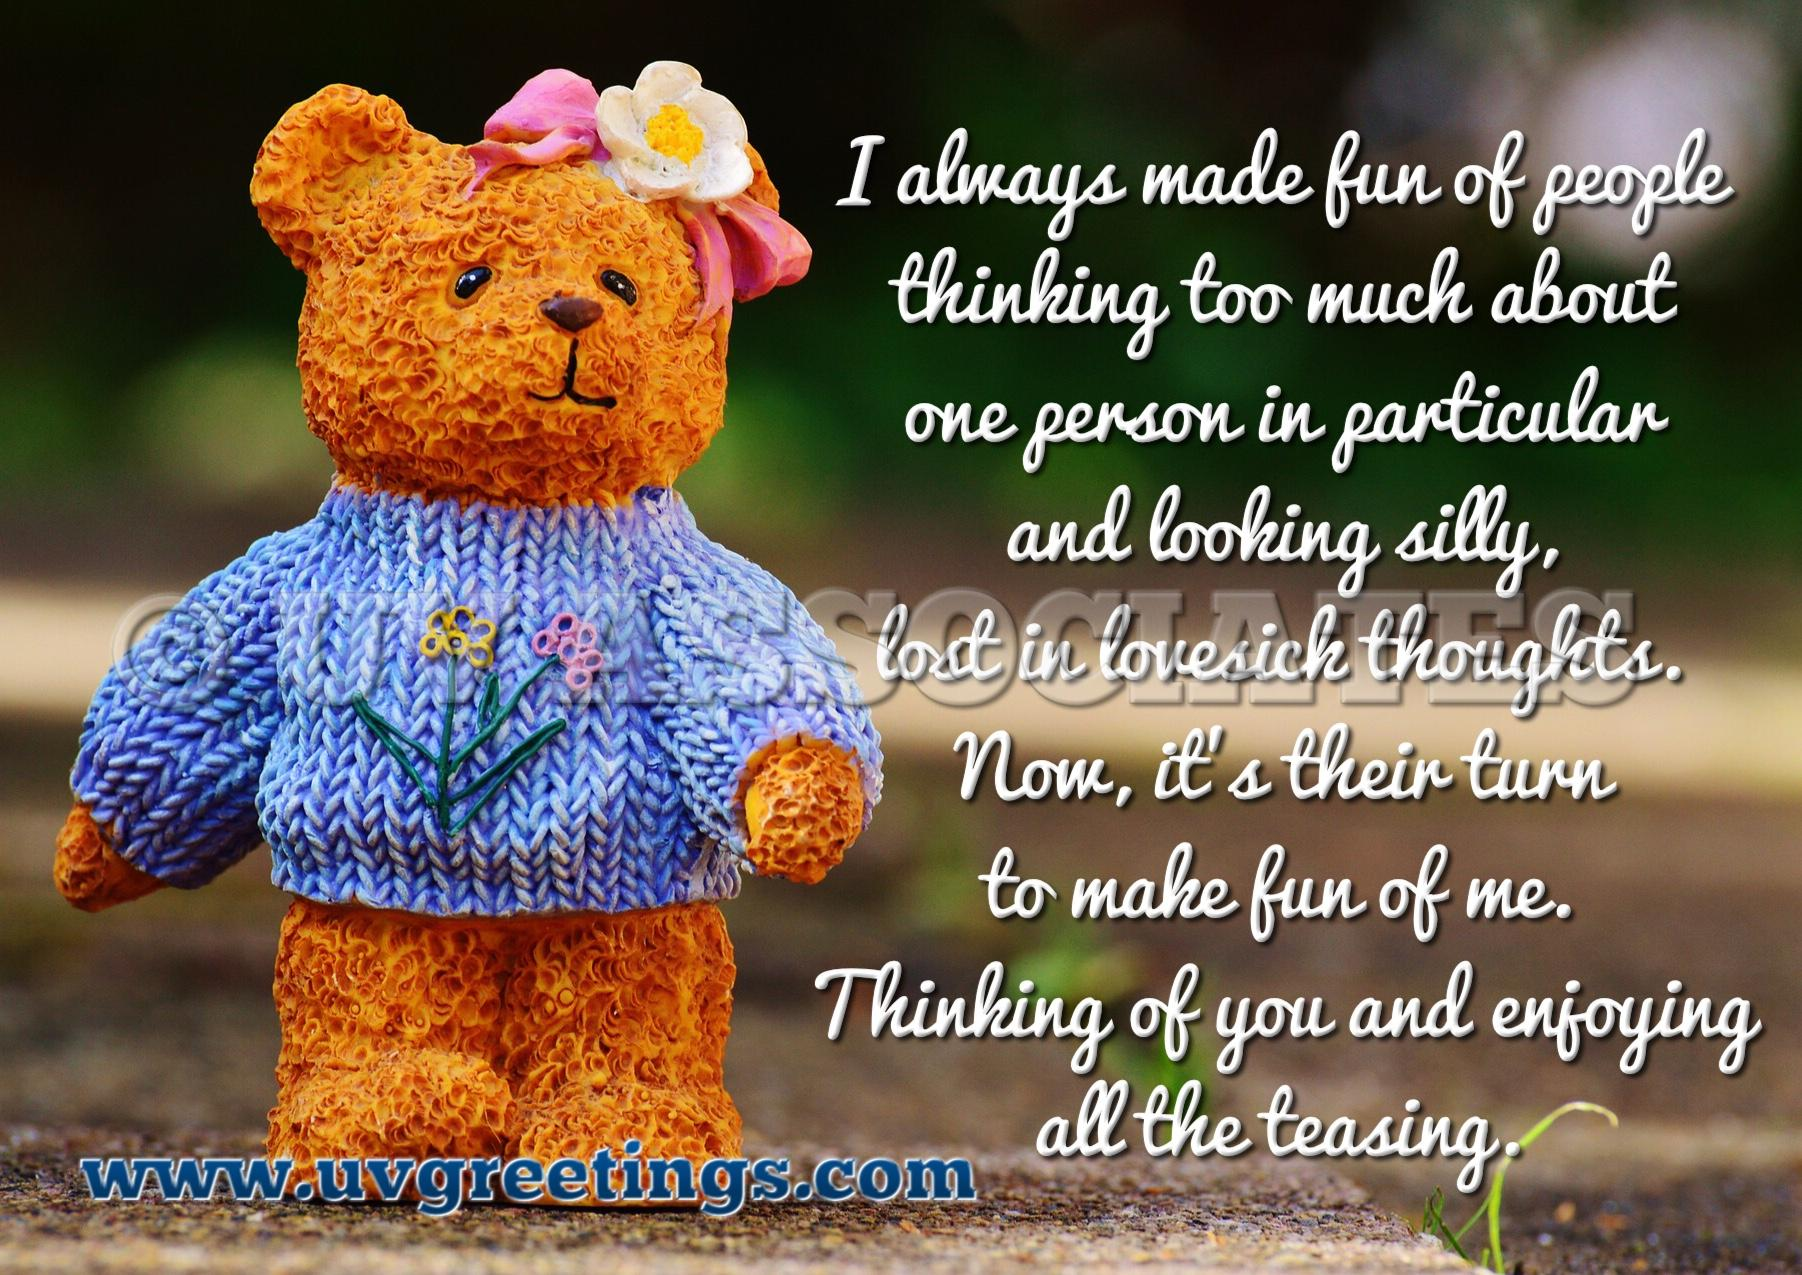 29 Thinking Of You Messages Romantic Poems Inspiring